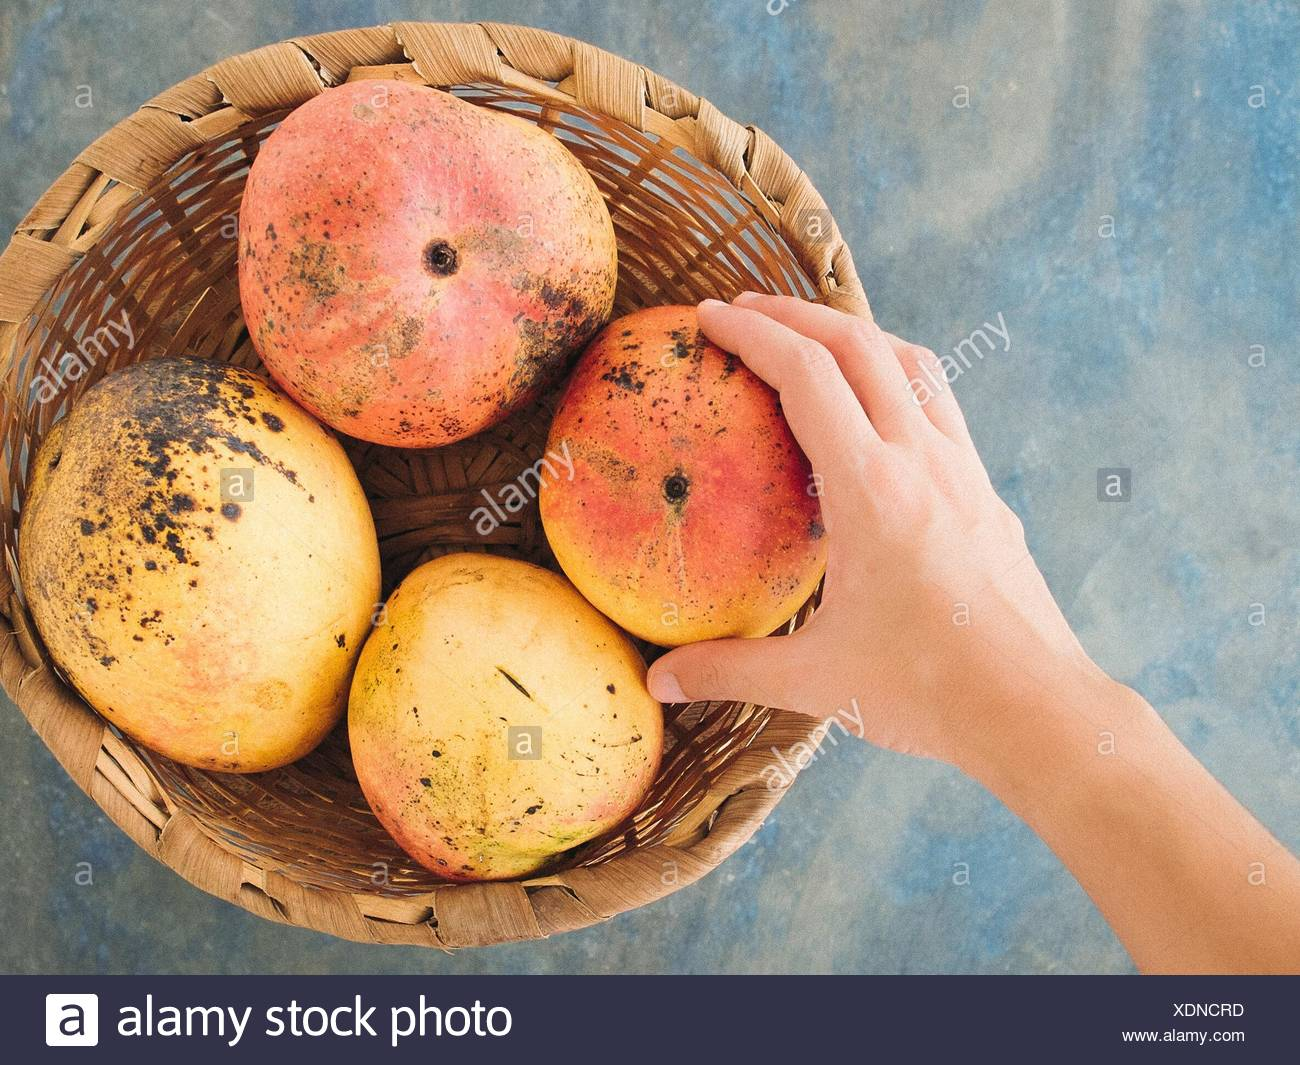 Cropped Image Of Hand Touching Mangoes In Whicker Basket On Table - Stock Image